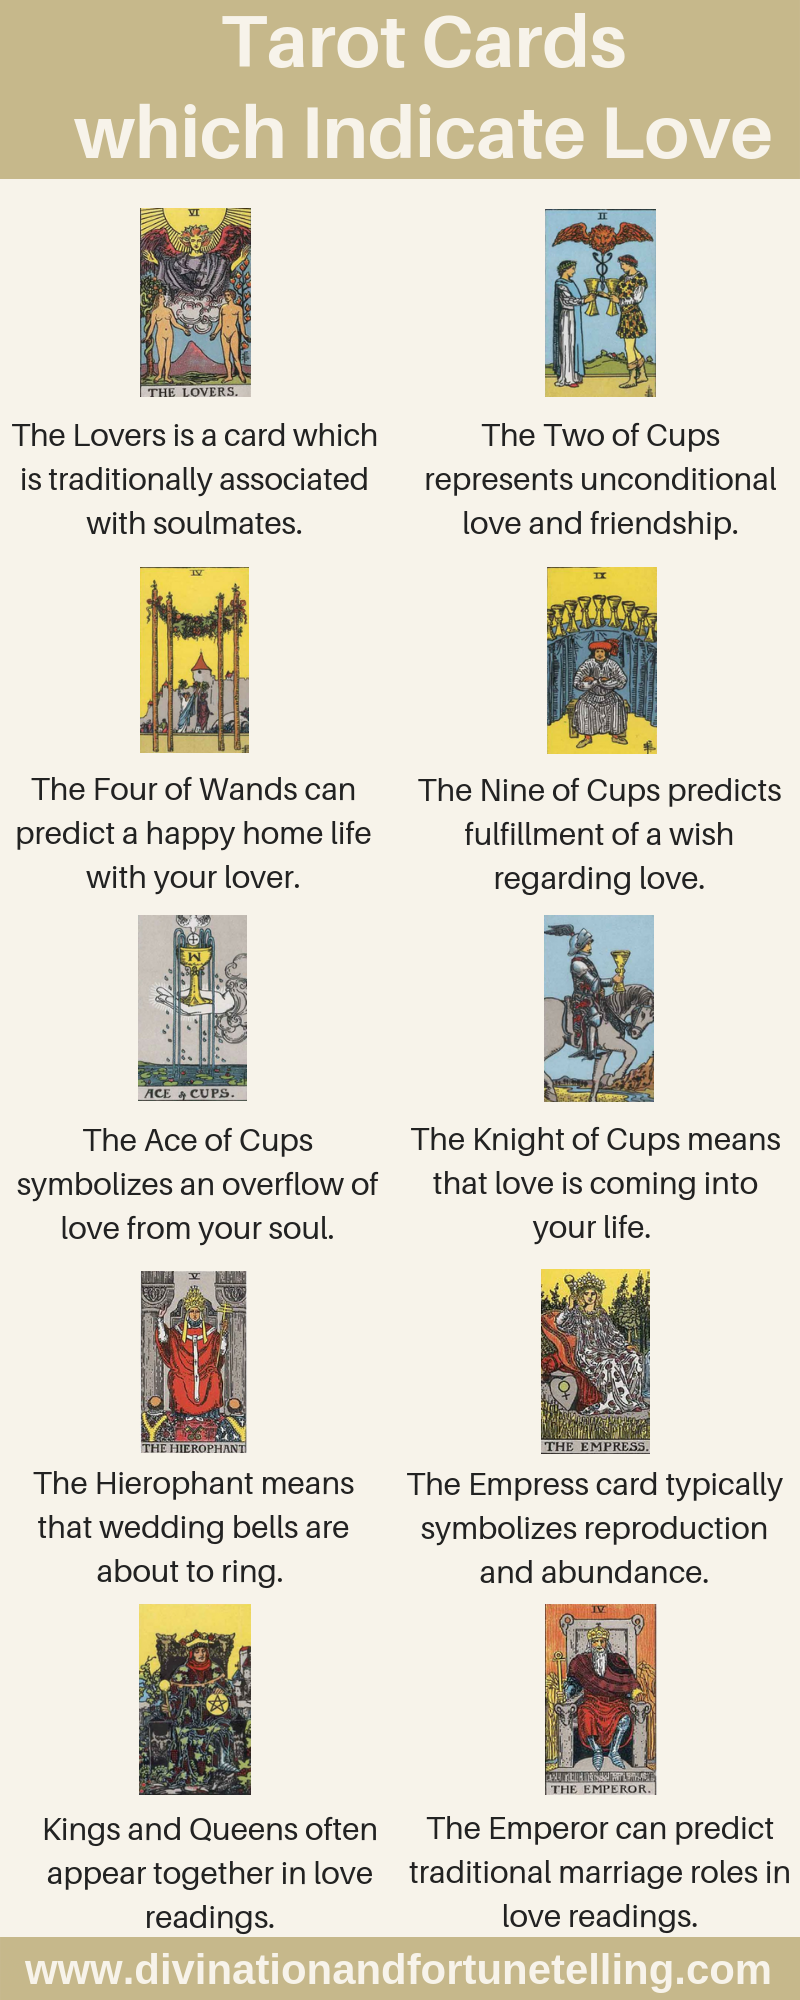 Art Illustration: Curious to discover which Tarot card represents a potential for love? Which Tarot cards should you be hoping for if you're performing a relationship reading? Which cards indicate that your romance is going to last? If you want to know which Tarot cards predict love, you're in luck! I have just the list for you below.